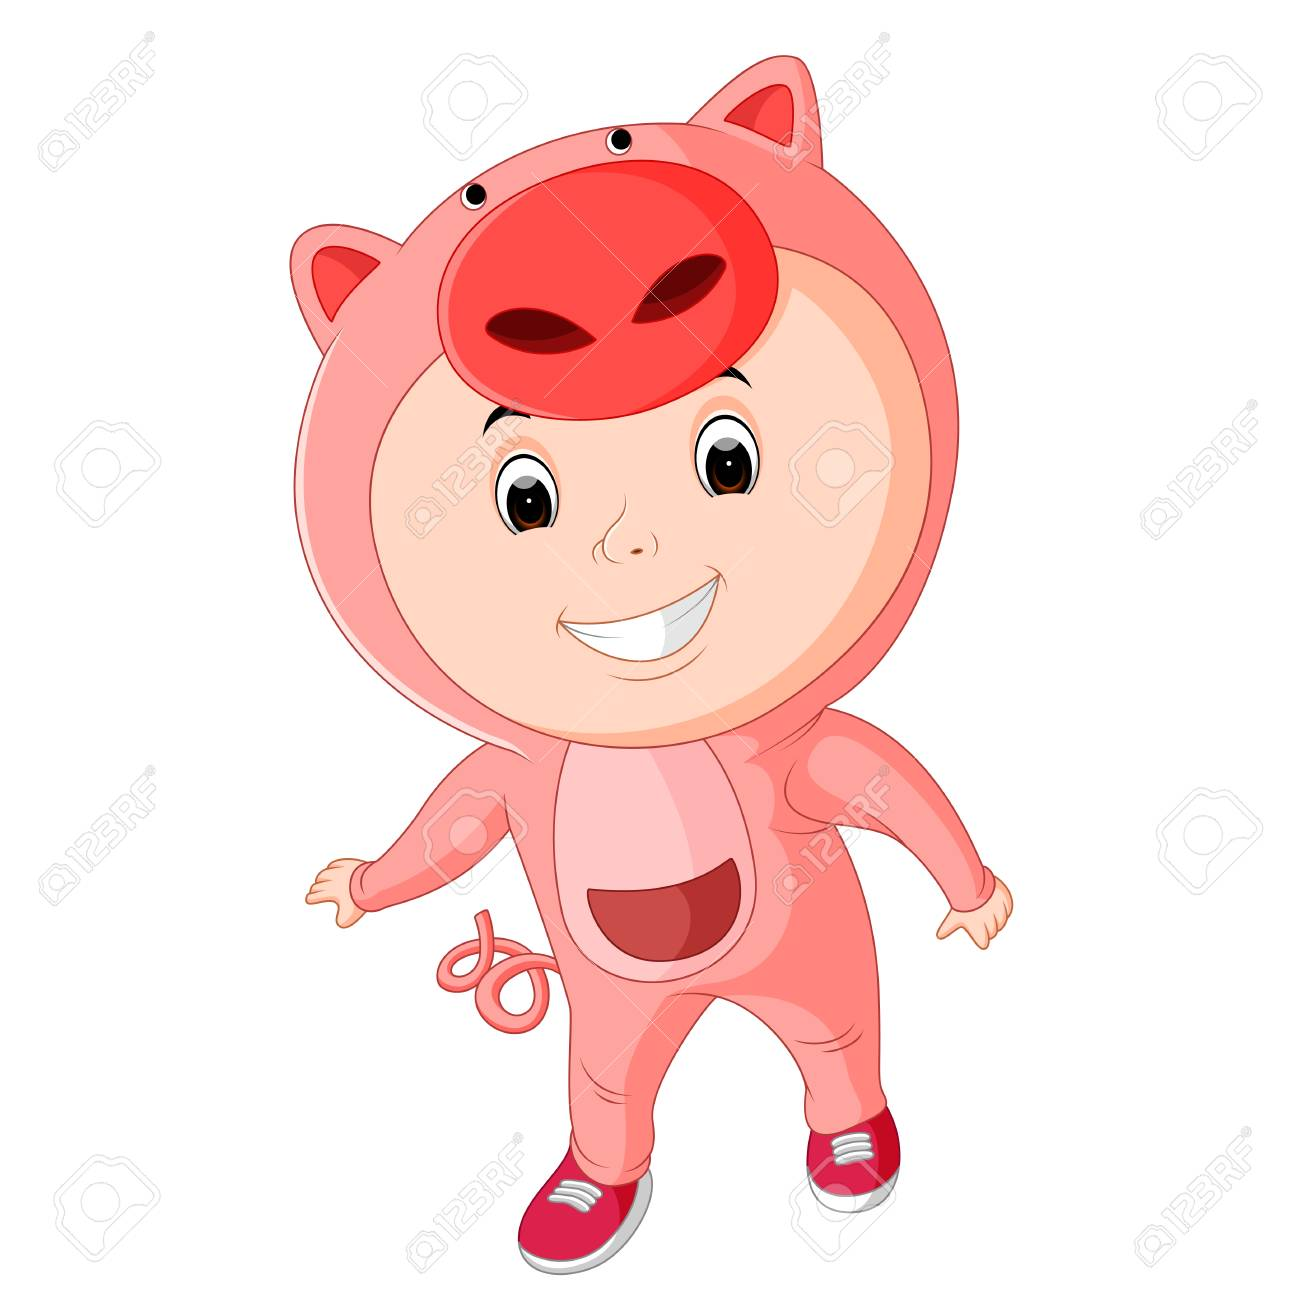 cute kids wearing animal costumes Stock Vector - 88618735  sc 1 st  123RF.com & Cute Kids Wearing Animal Costumes Royalty Free Cliparts Vectors ...